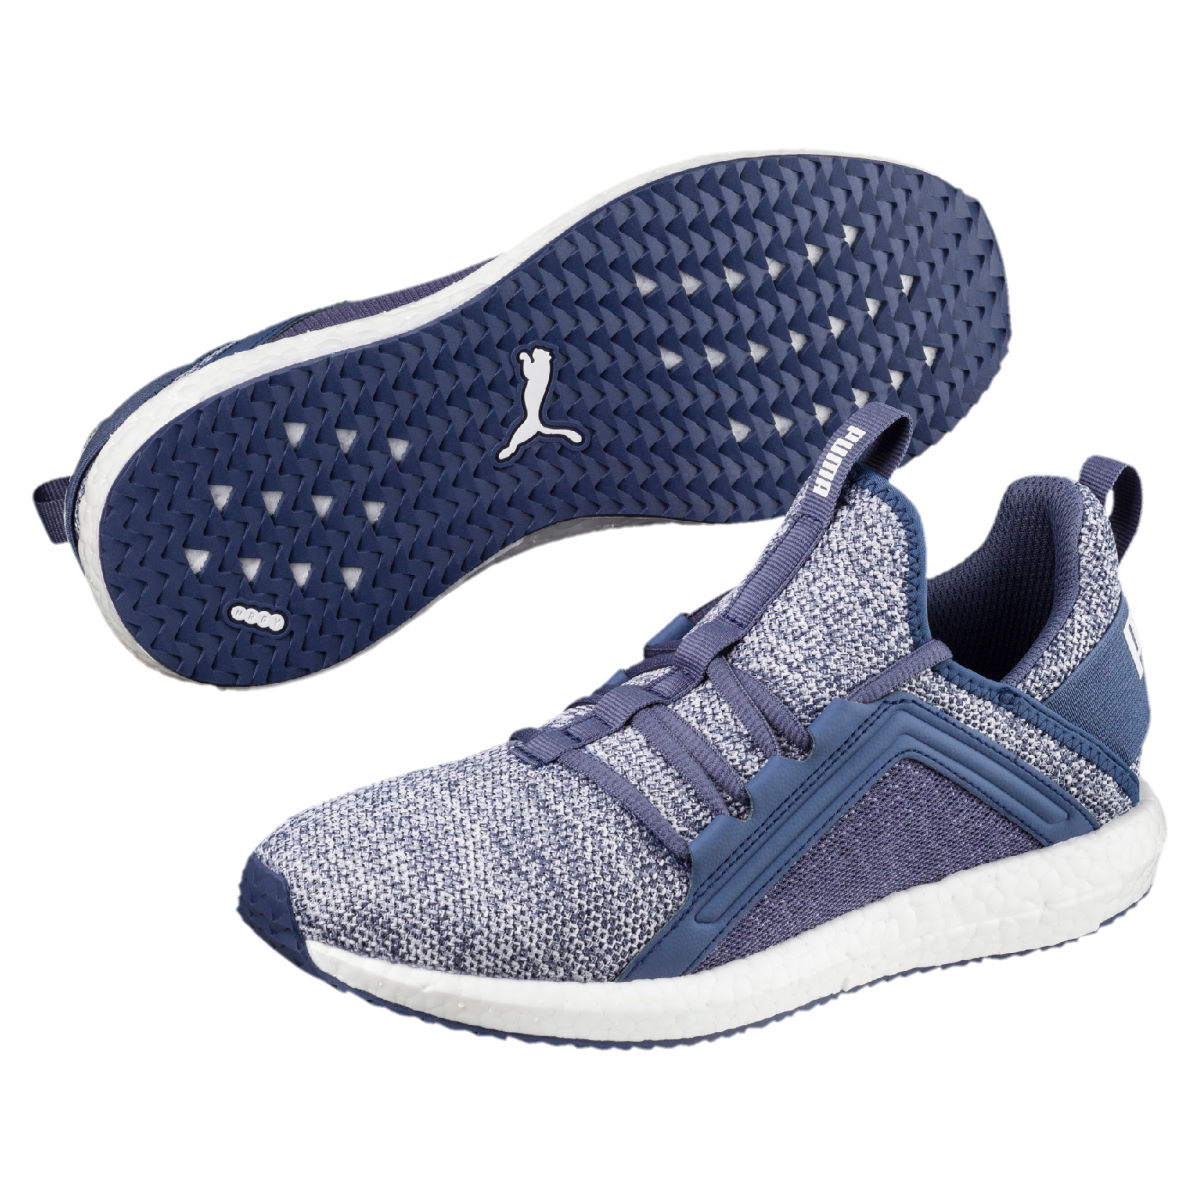 Chaussures Femme Puma Mega NRGY Knit - UK 4 blue indigo/white